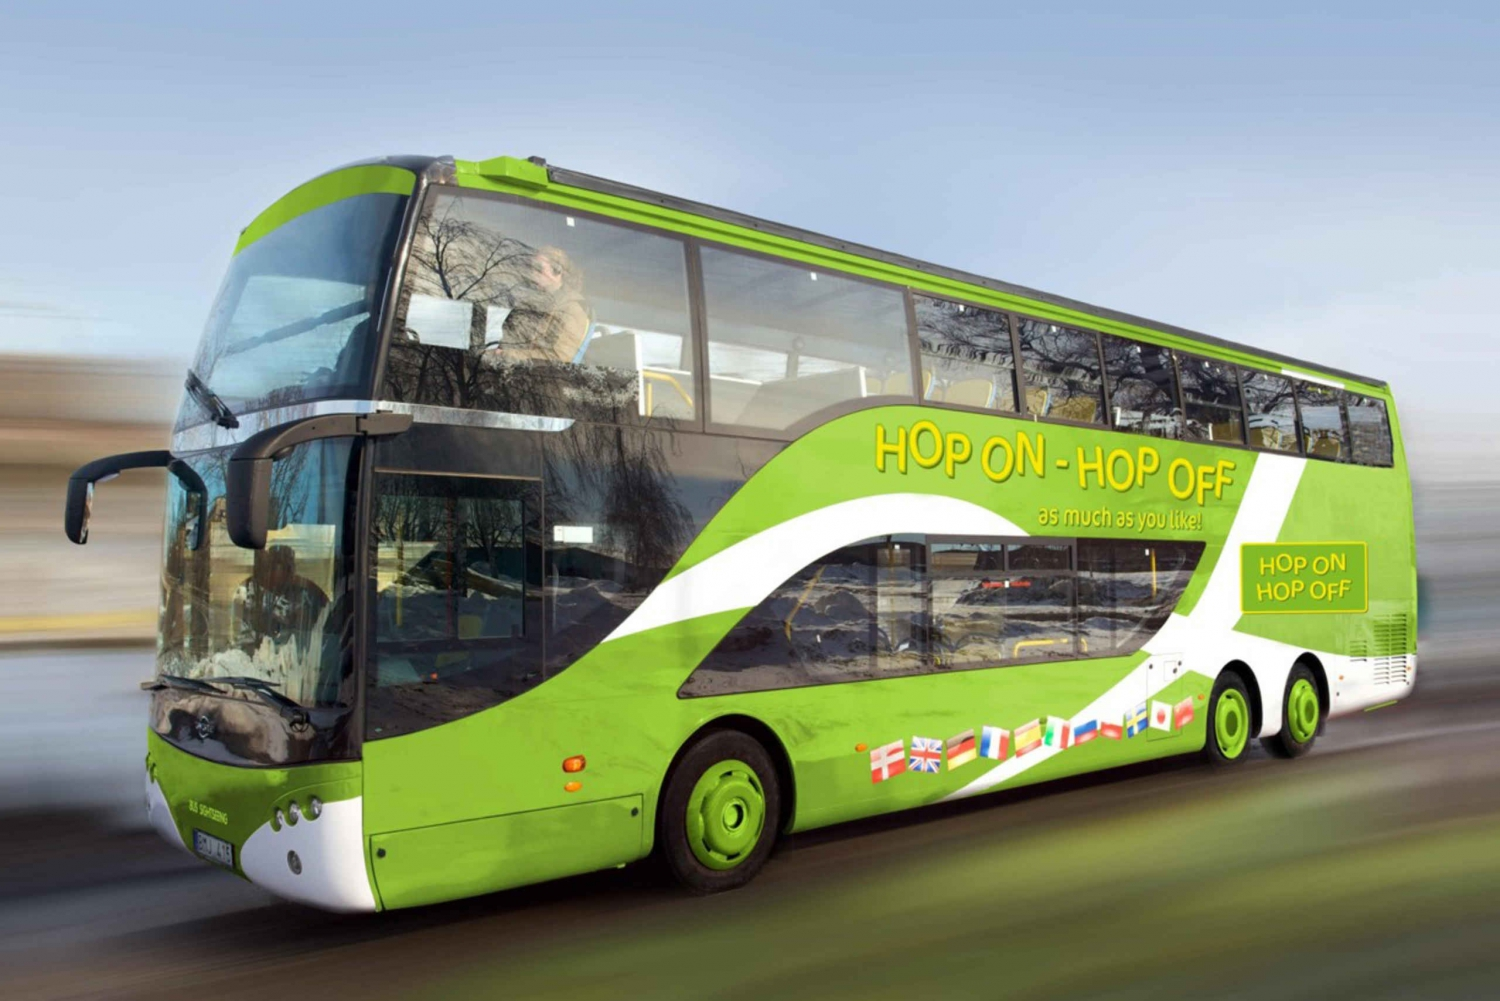 Hop On, Hop Off Citybus 24-Hour Ticket